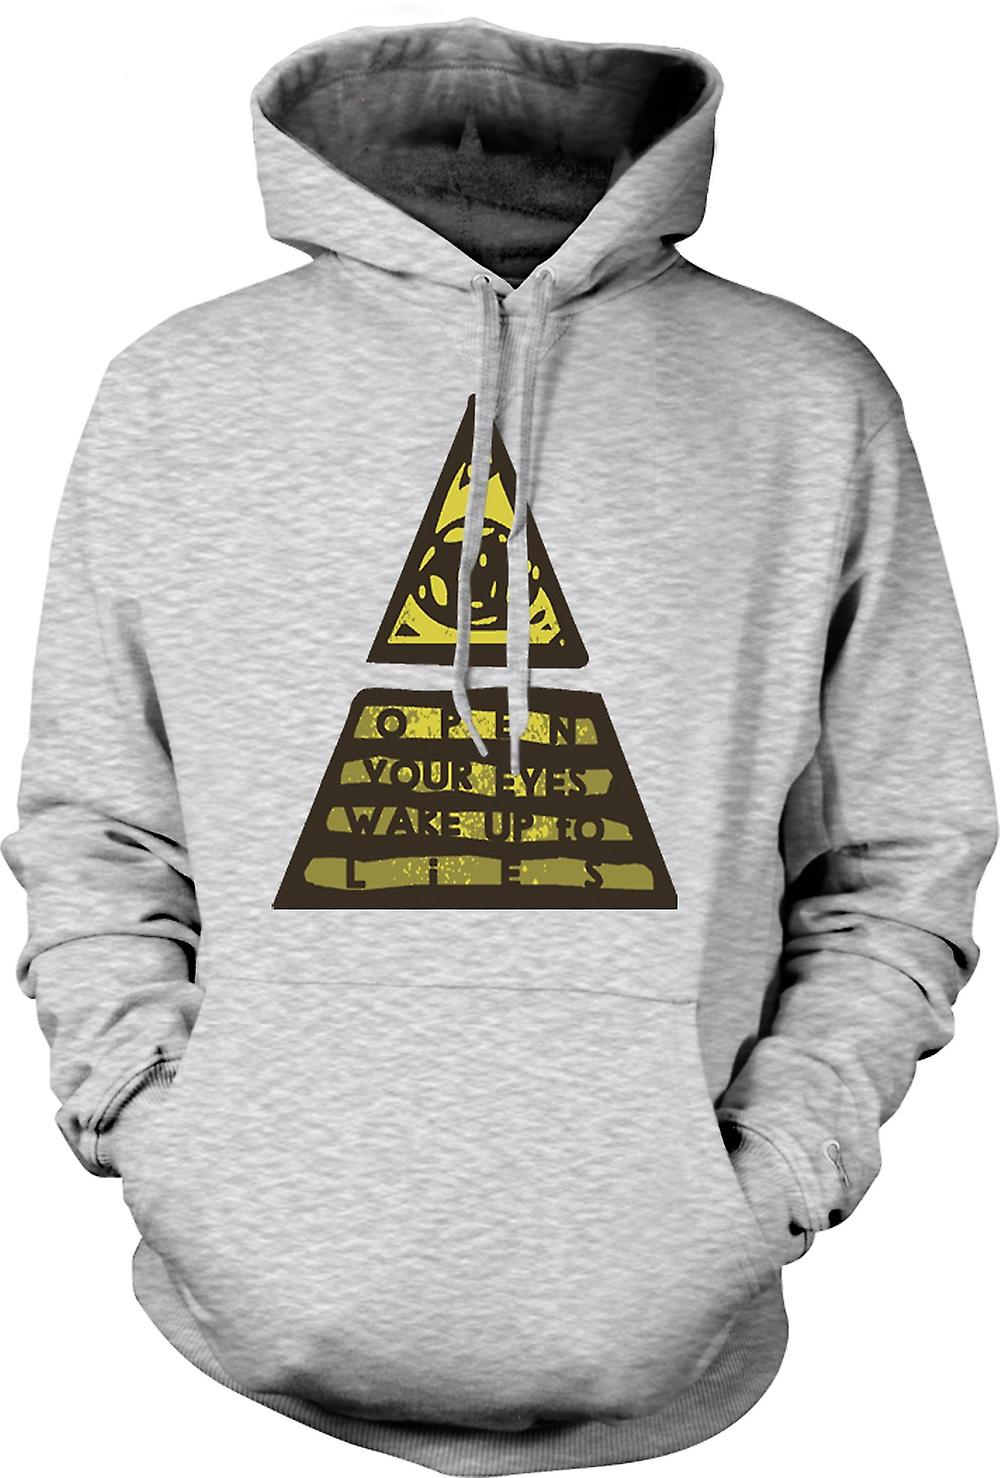 Mens Hoodie - Illuminati Wake Up To The Lies